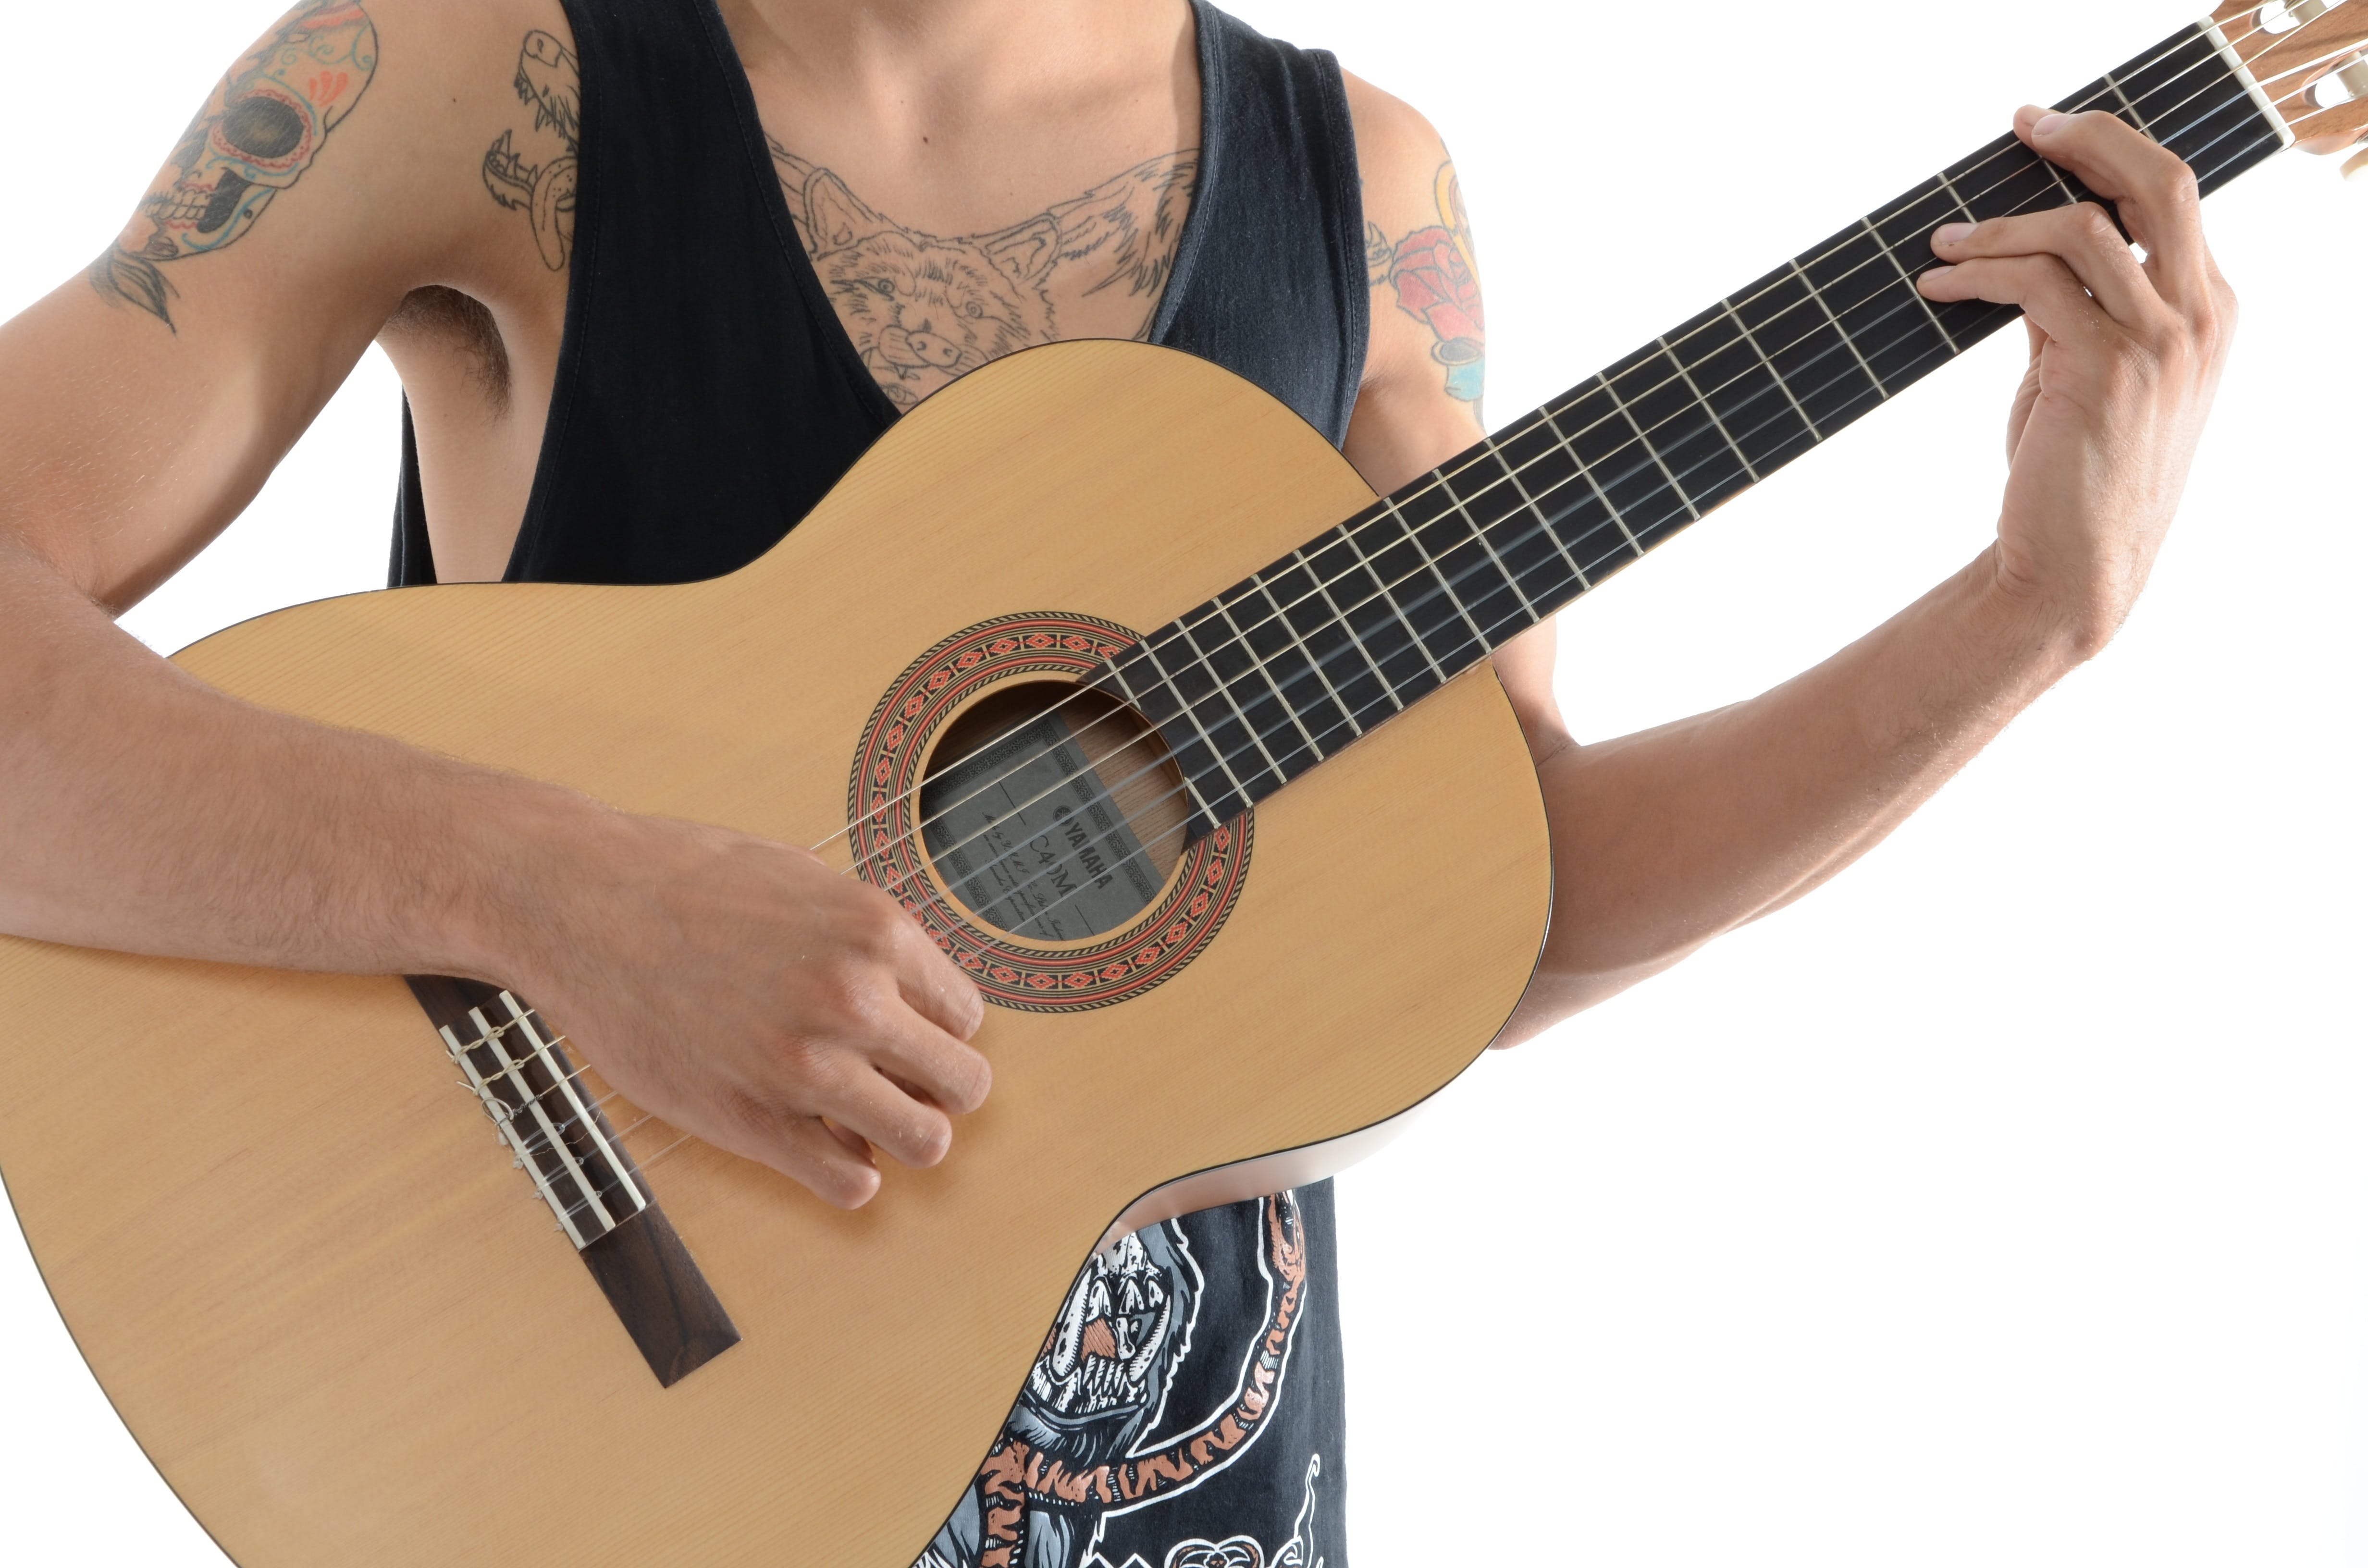 Person Playing a Classic Acoustic Guitar in a White Room